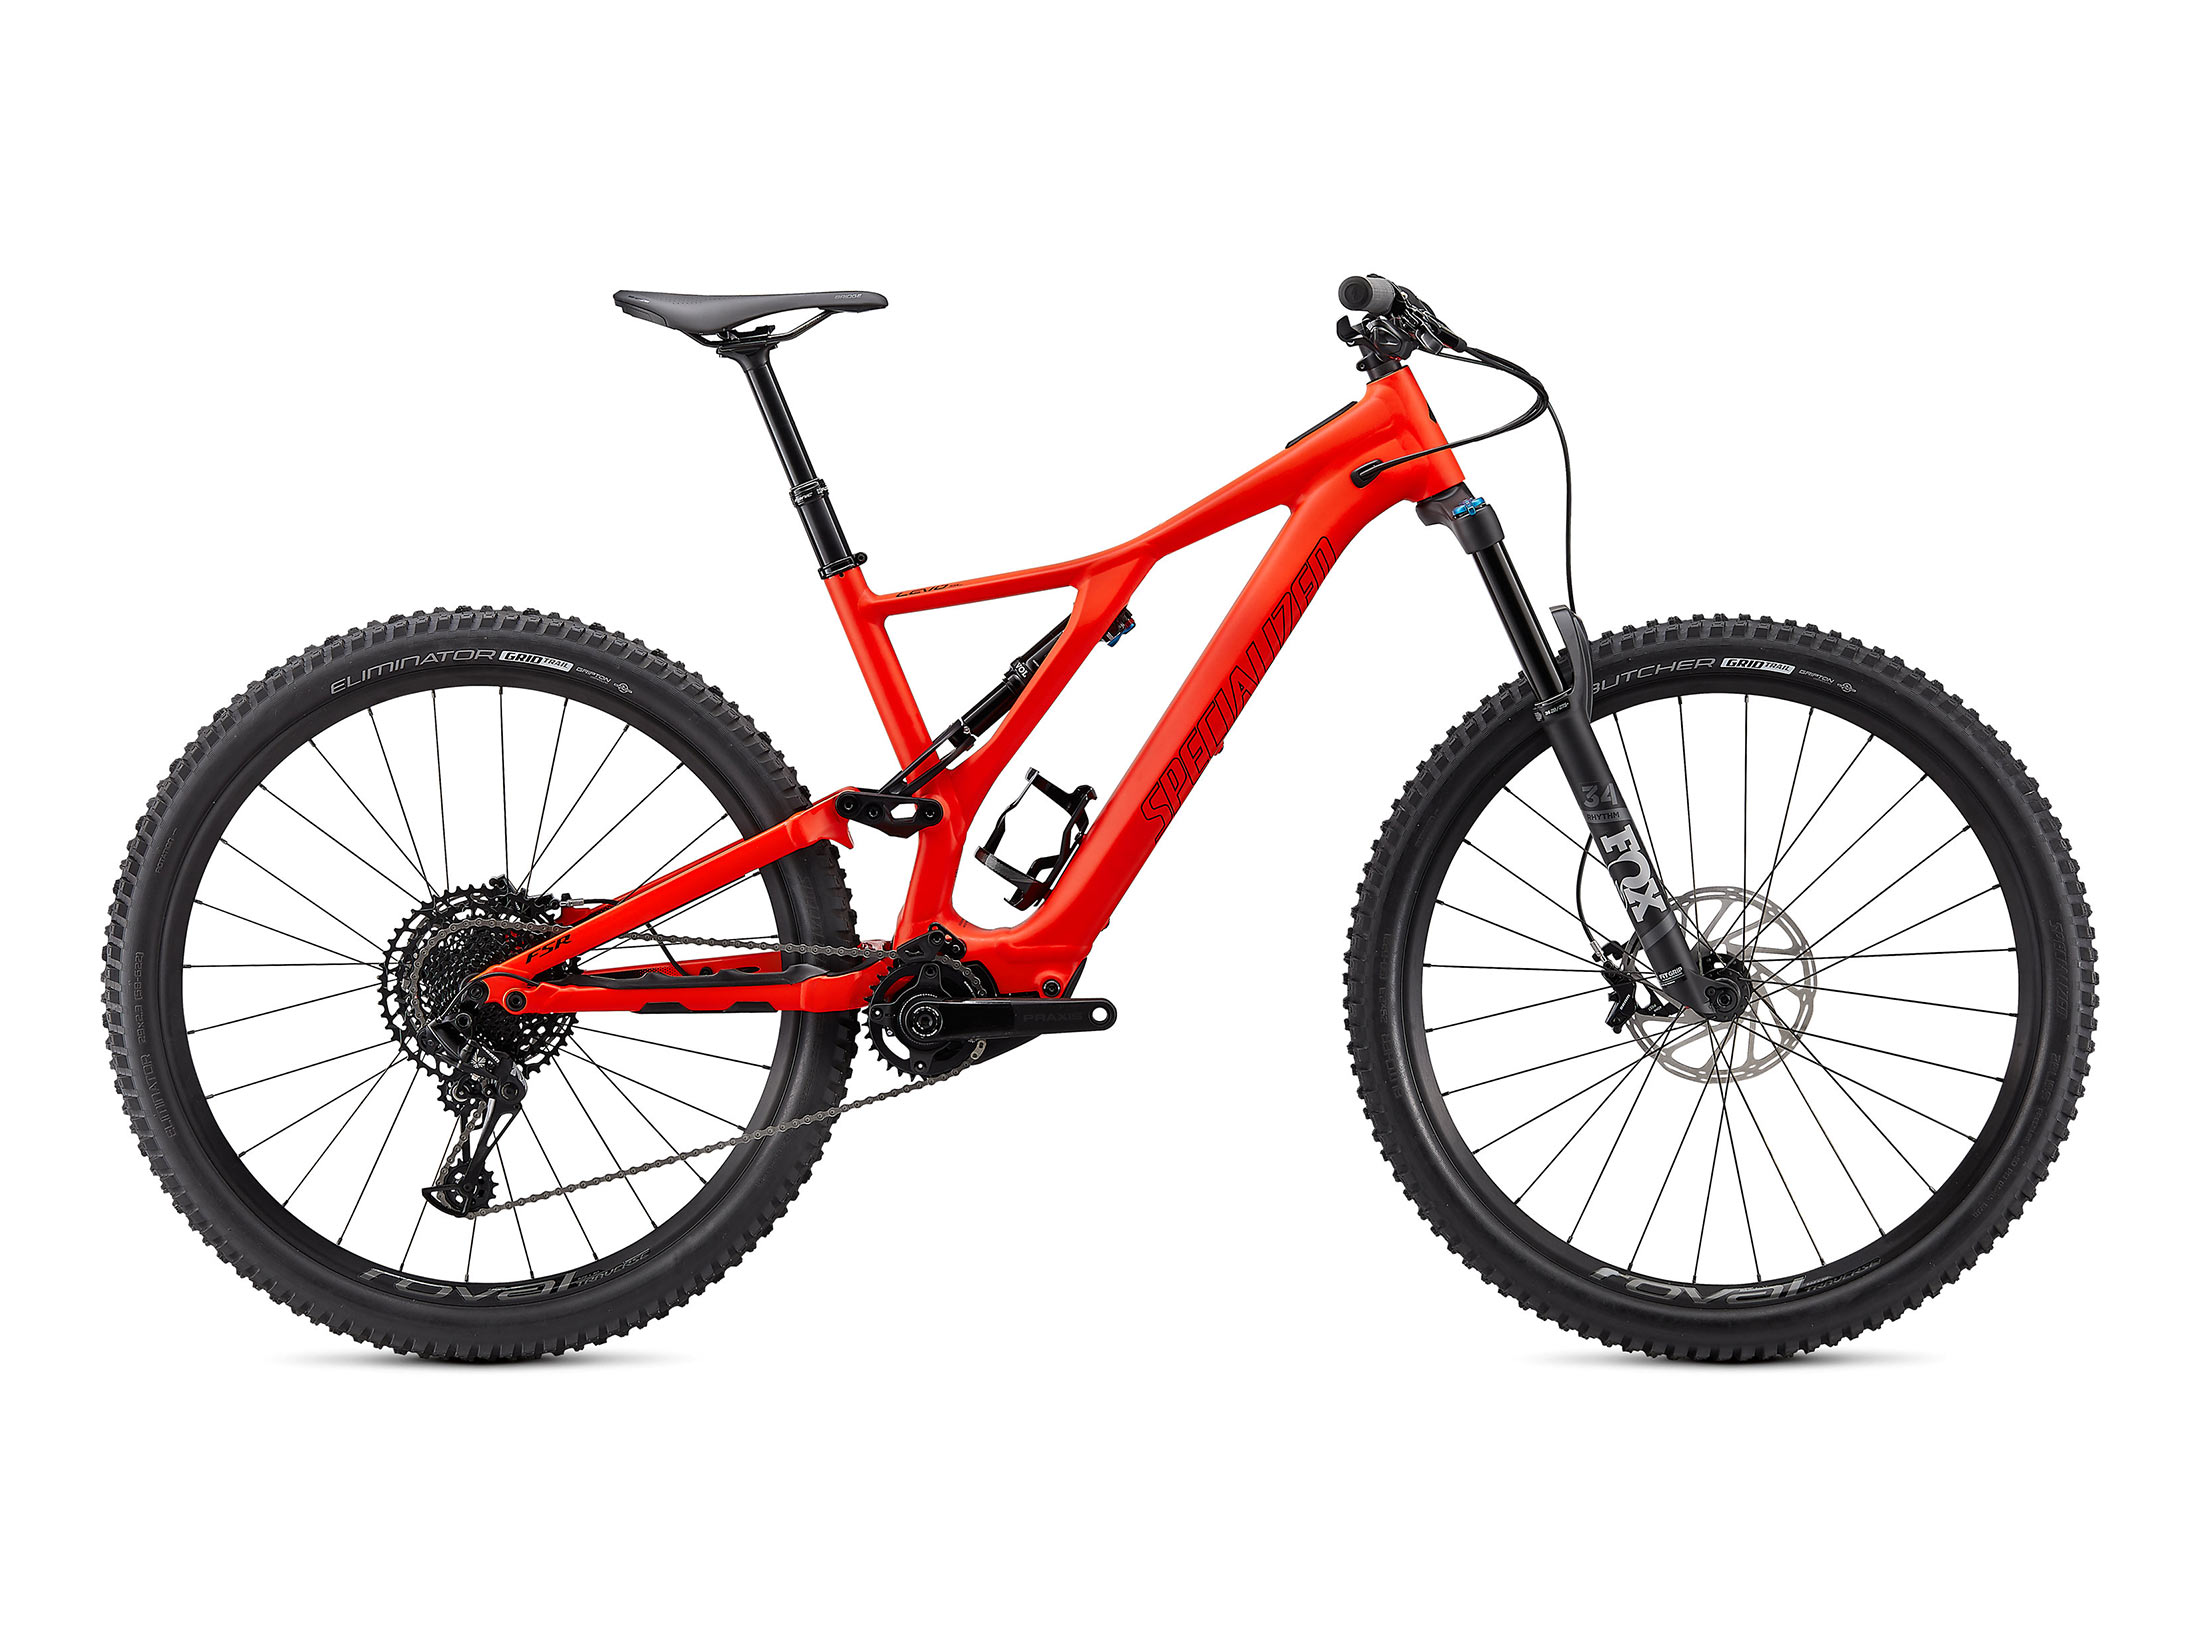 Ηλεκτρικό Ποδήλατο Specialized Turbo Levo SL Comp - Rocket Red / Black